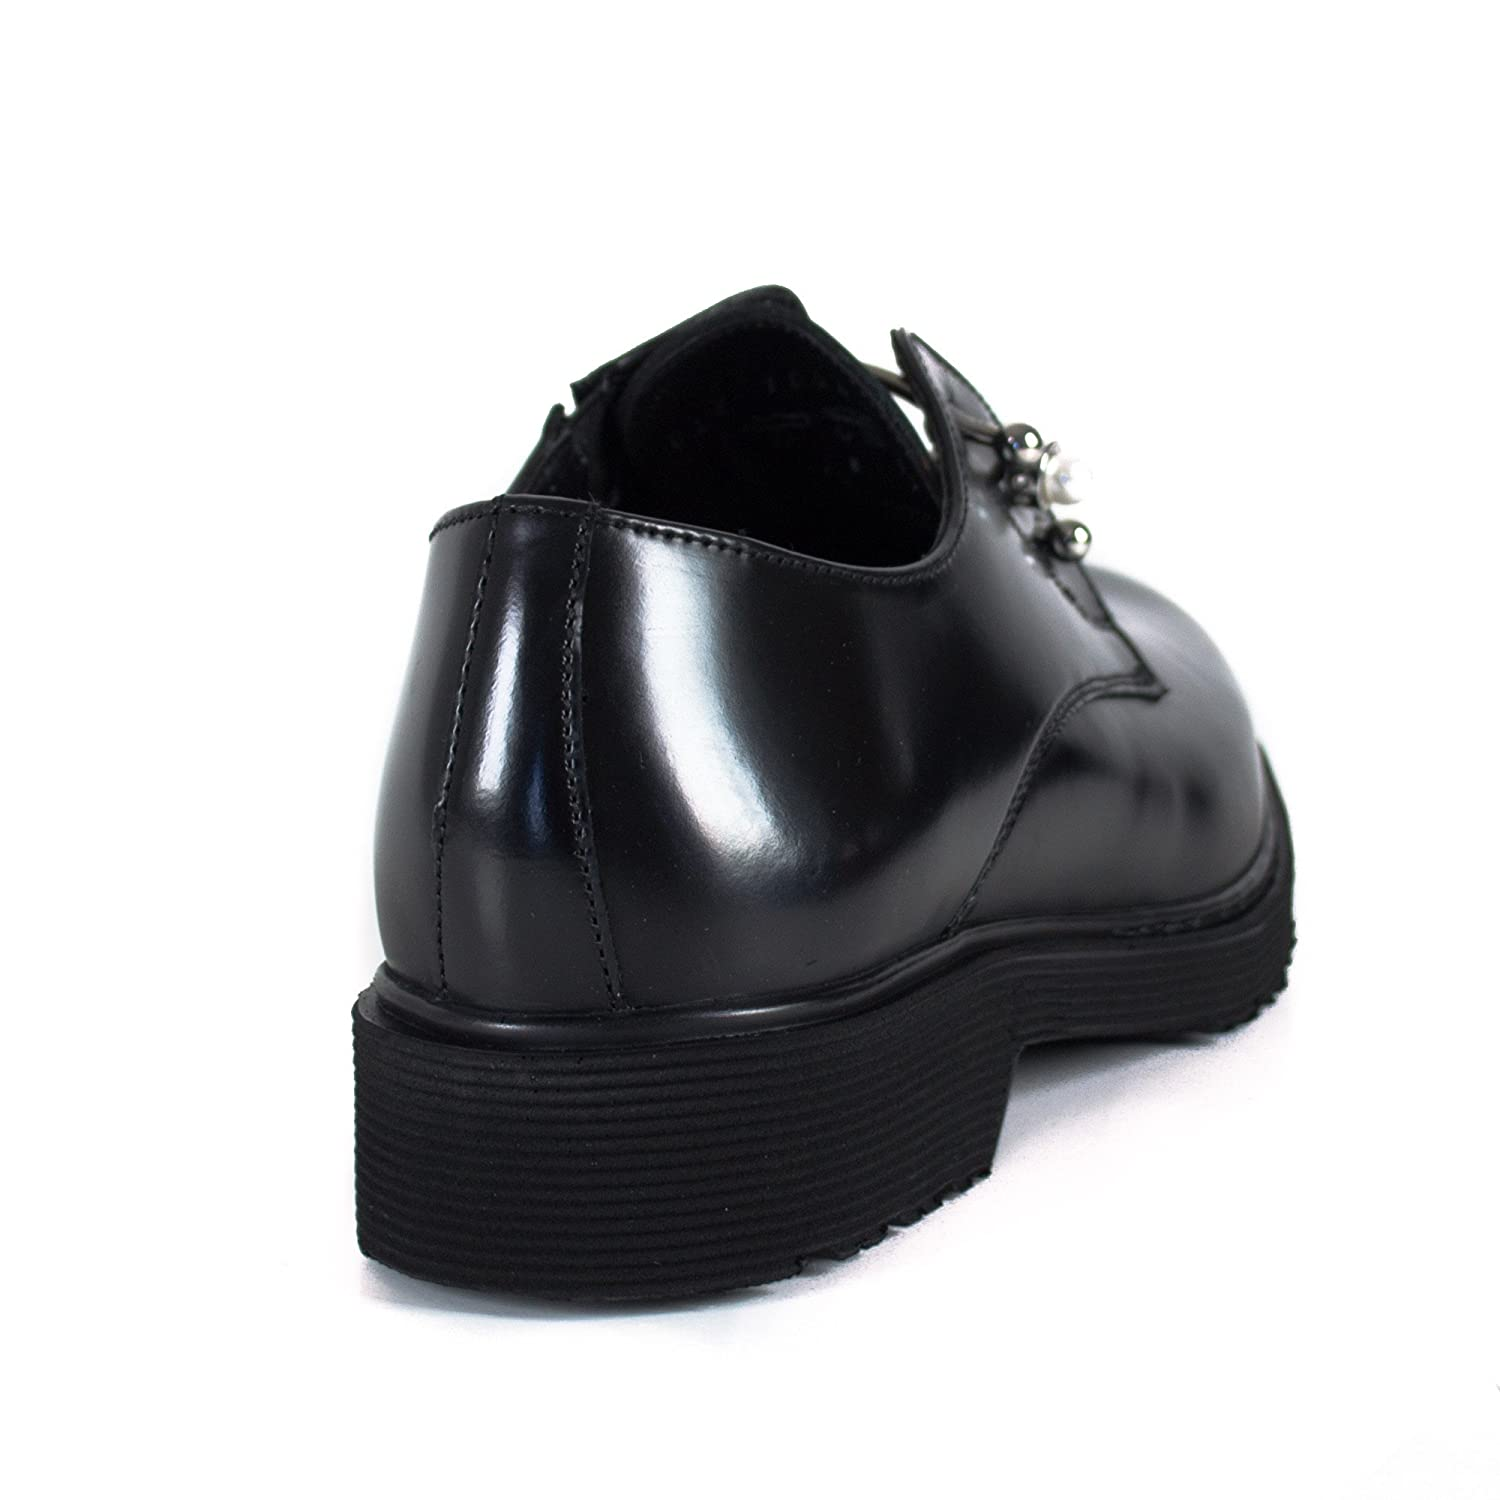 Cult Donna Allacciato CLE103093 CLE103093 CLE103093 Rose Low 1742 Brushed Leather Black Nero 65f973